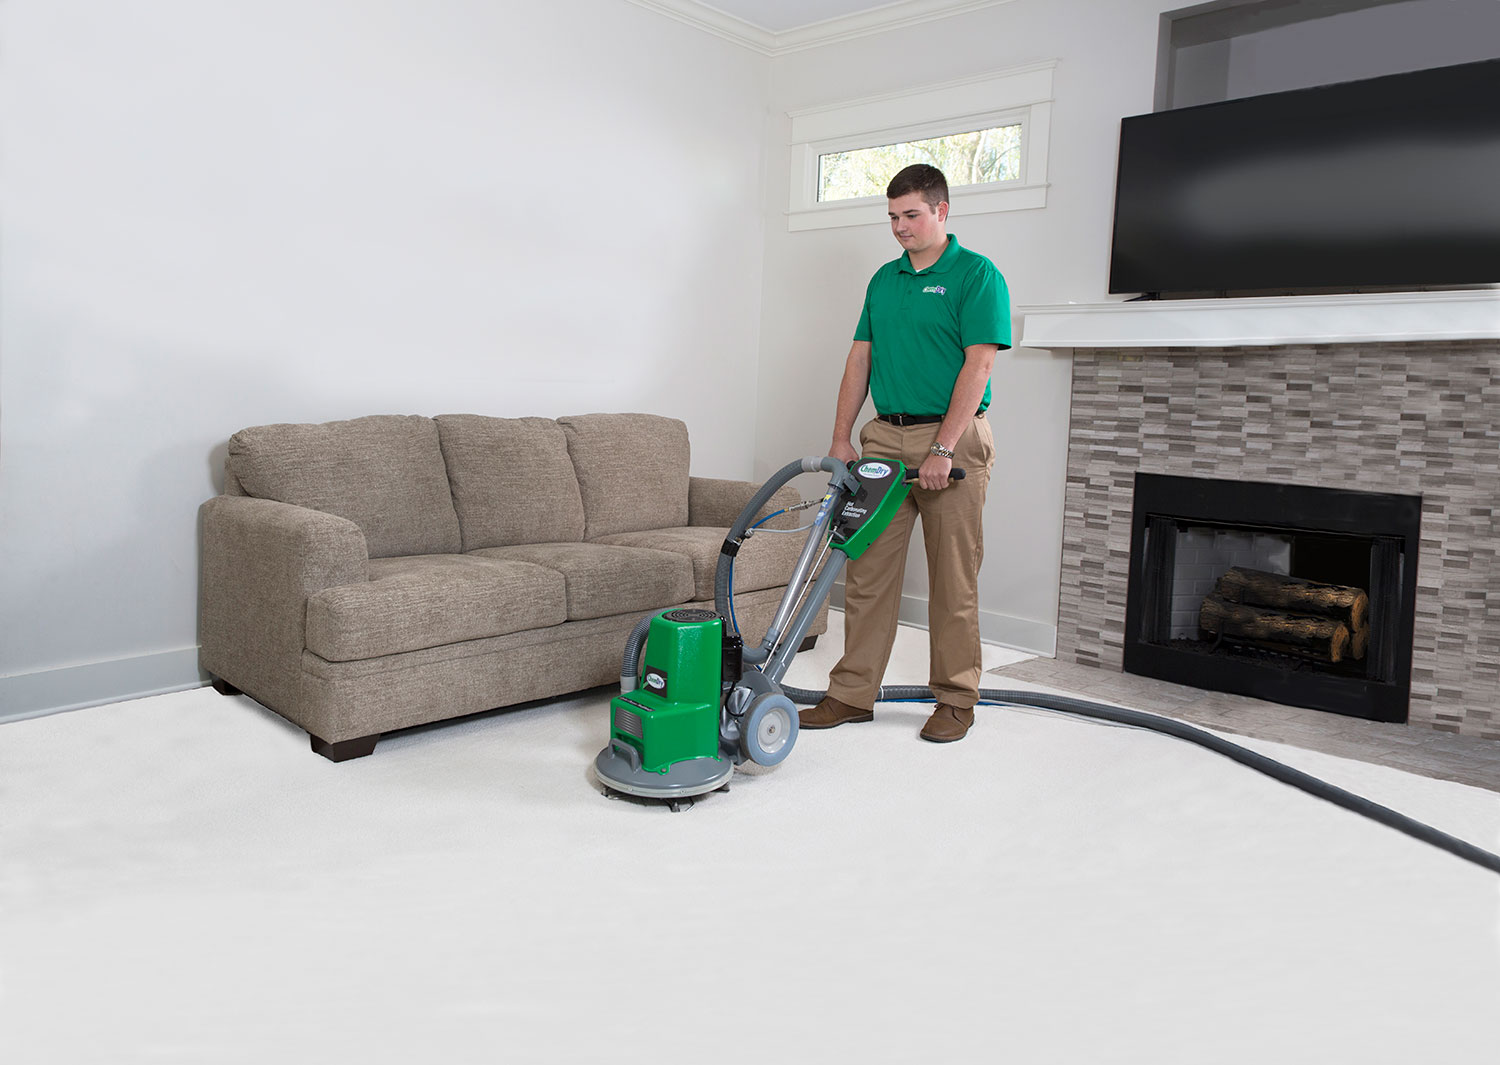 carpet cleaner at work